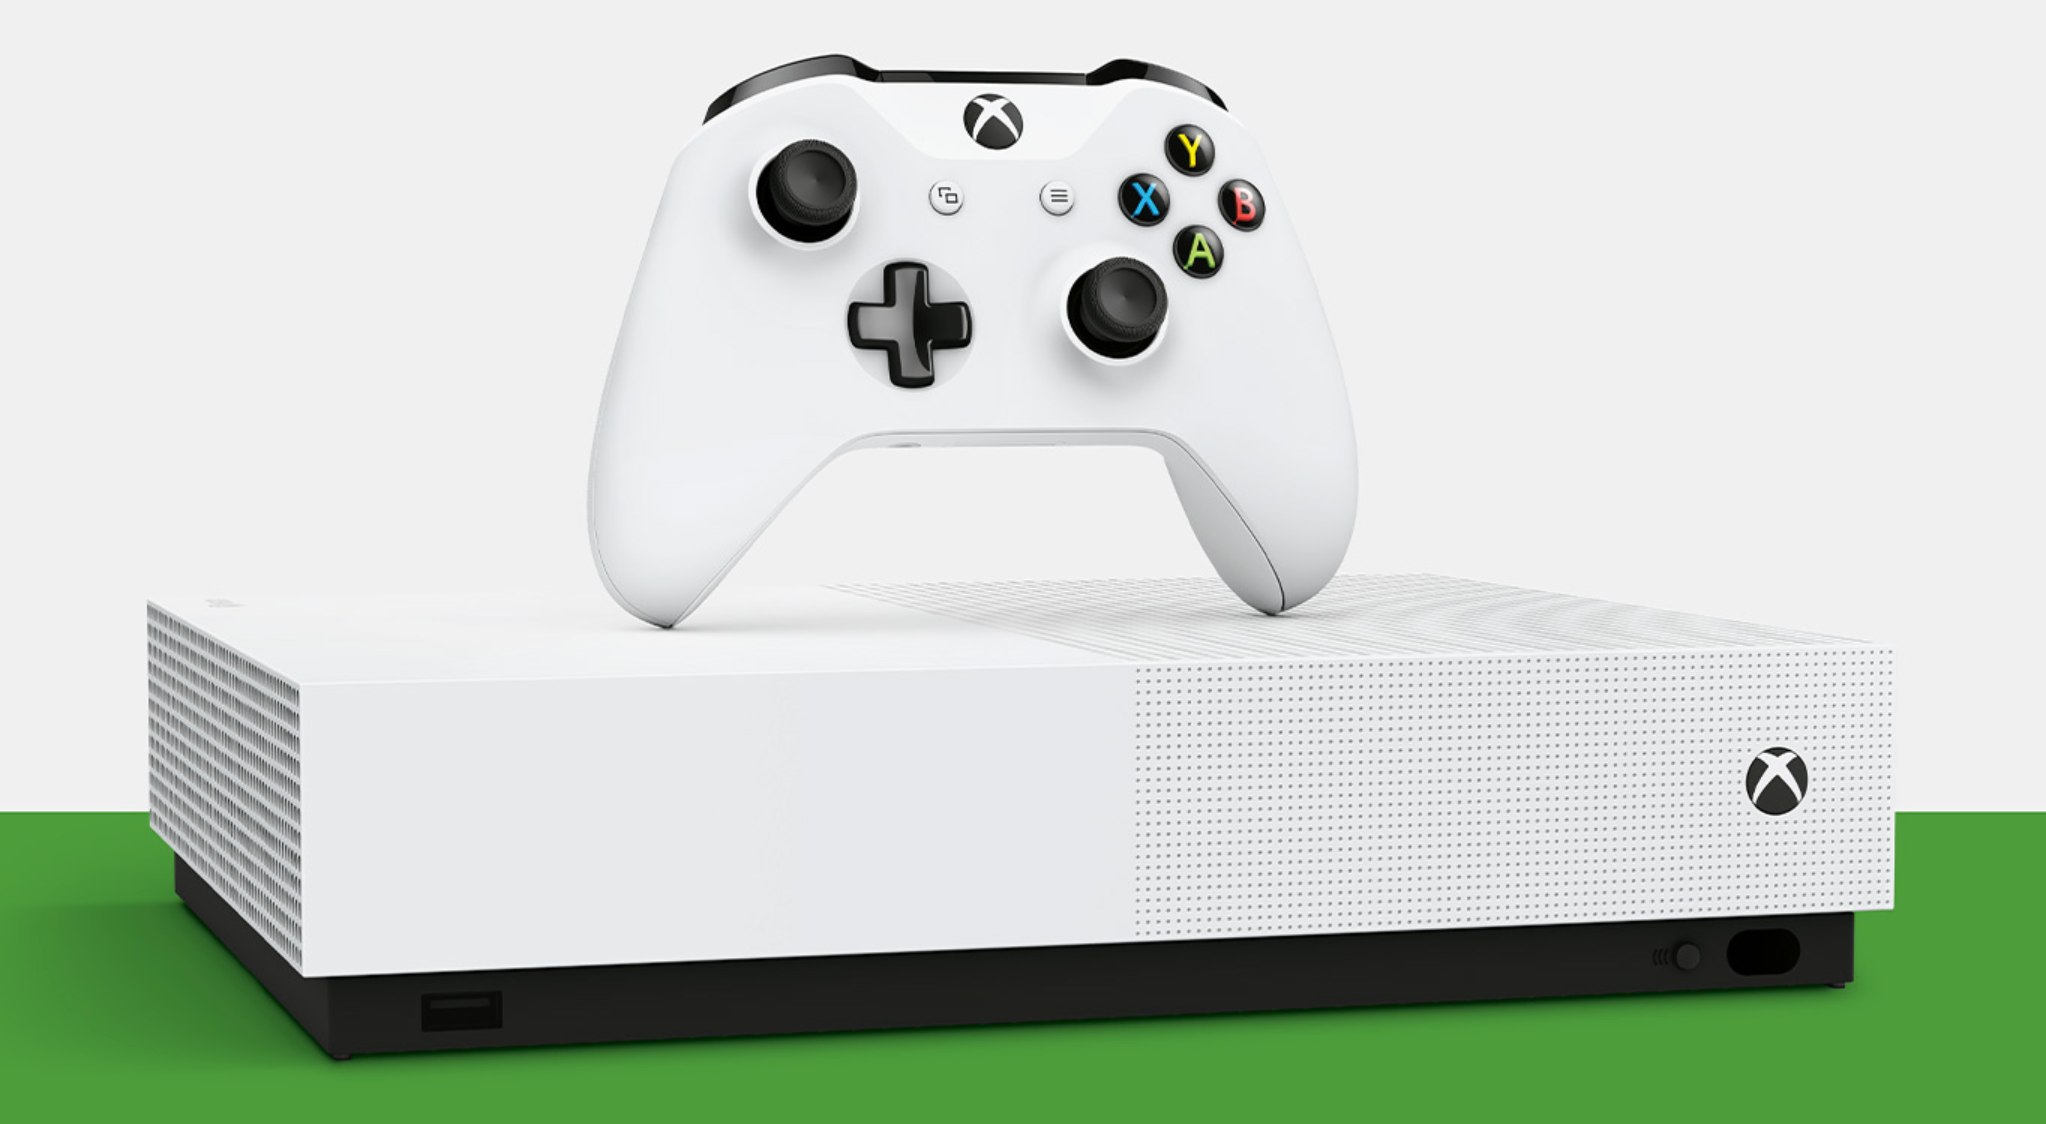 Xbox One S All-Digital Edition - A new disk free console from Xbox